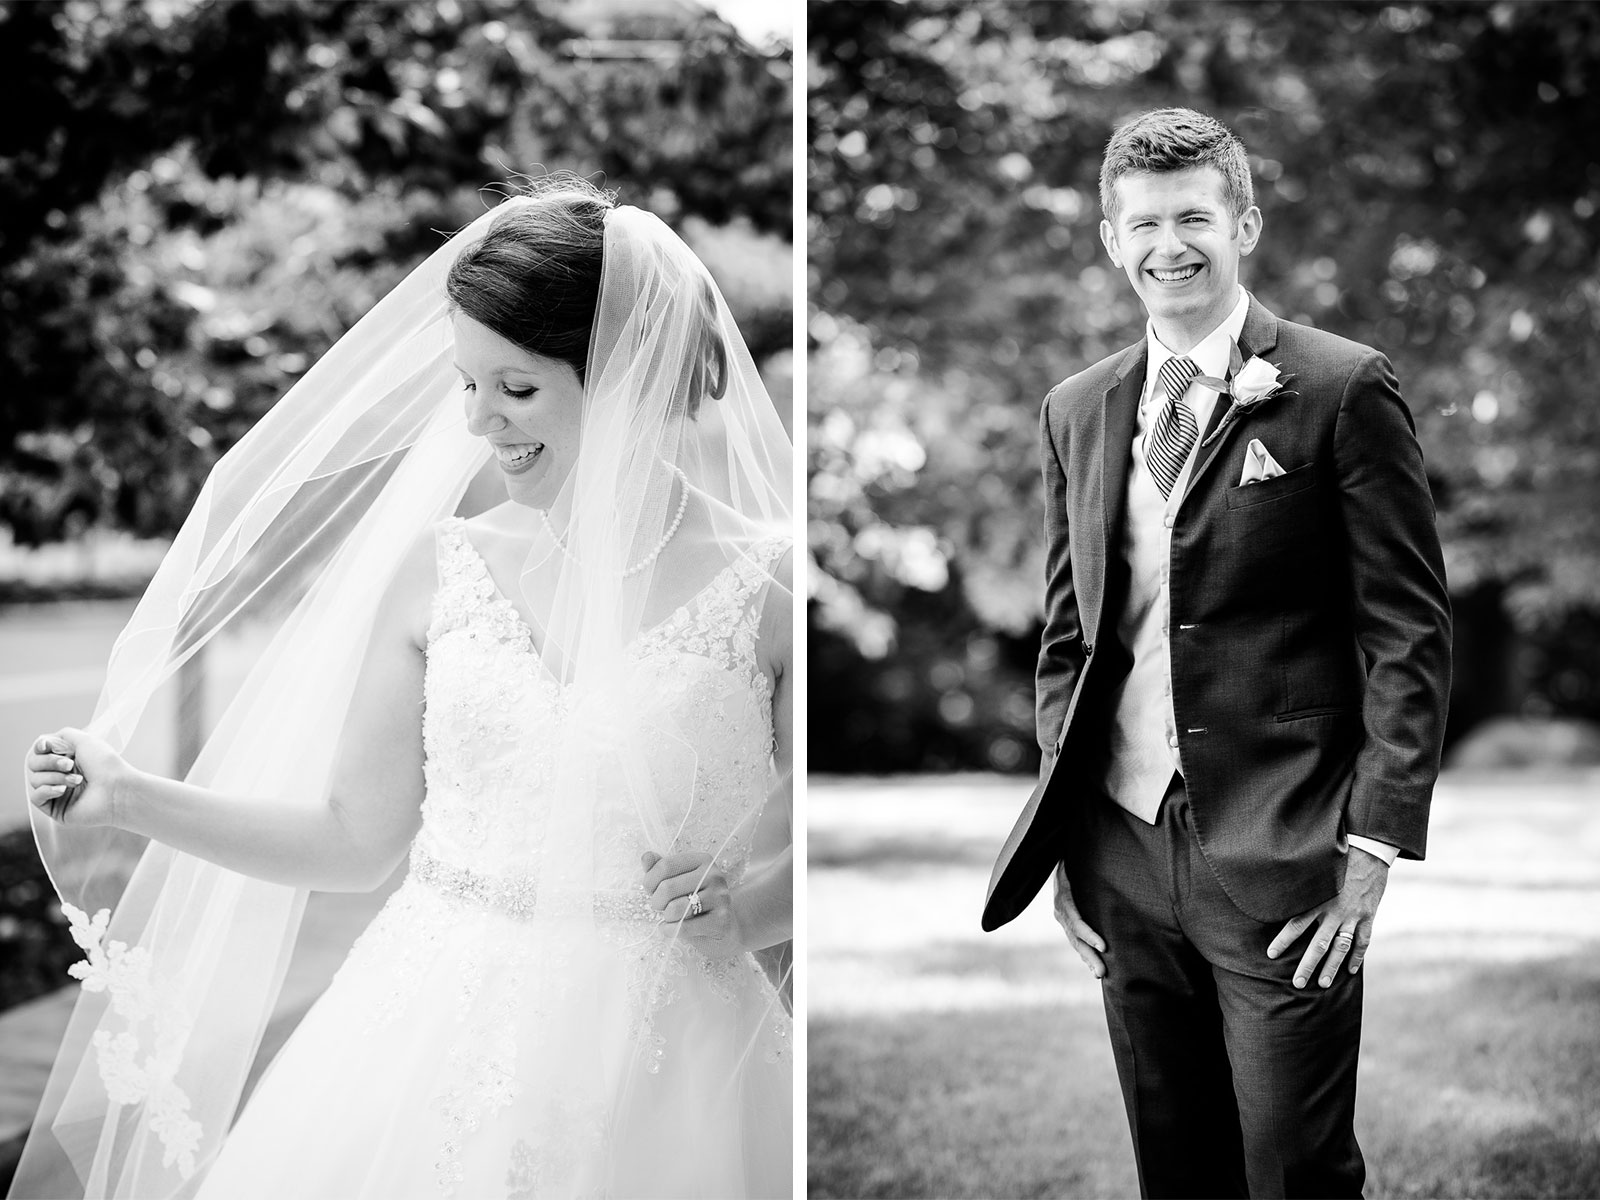 Eric_and_Christy_Photography_Blog_Wedding_Kelly_Michael-31-32